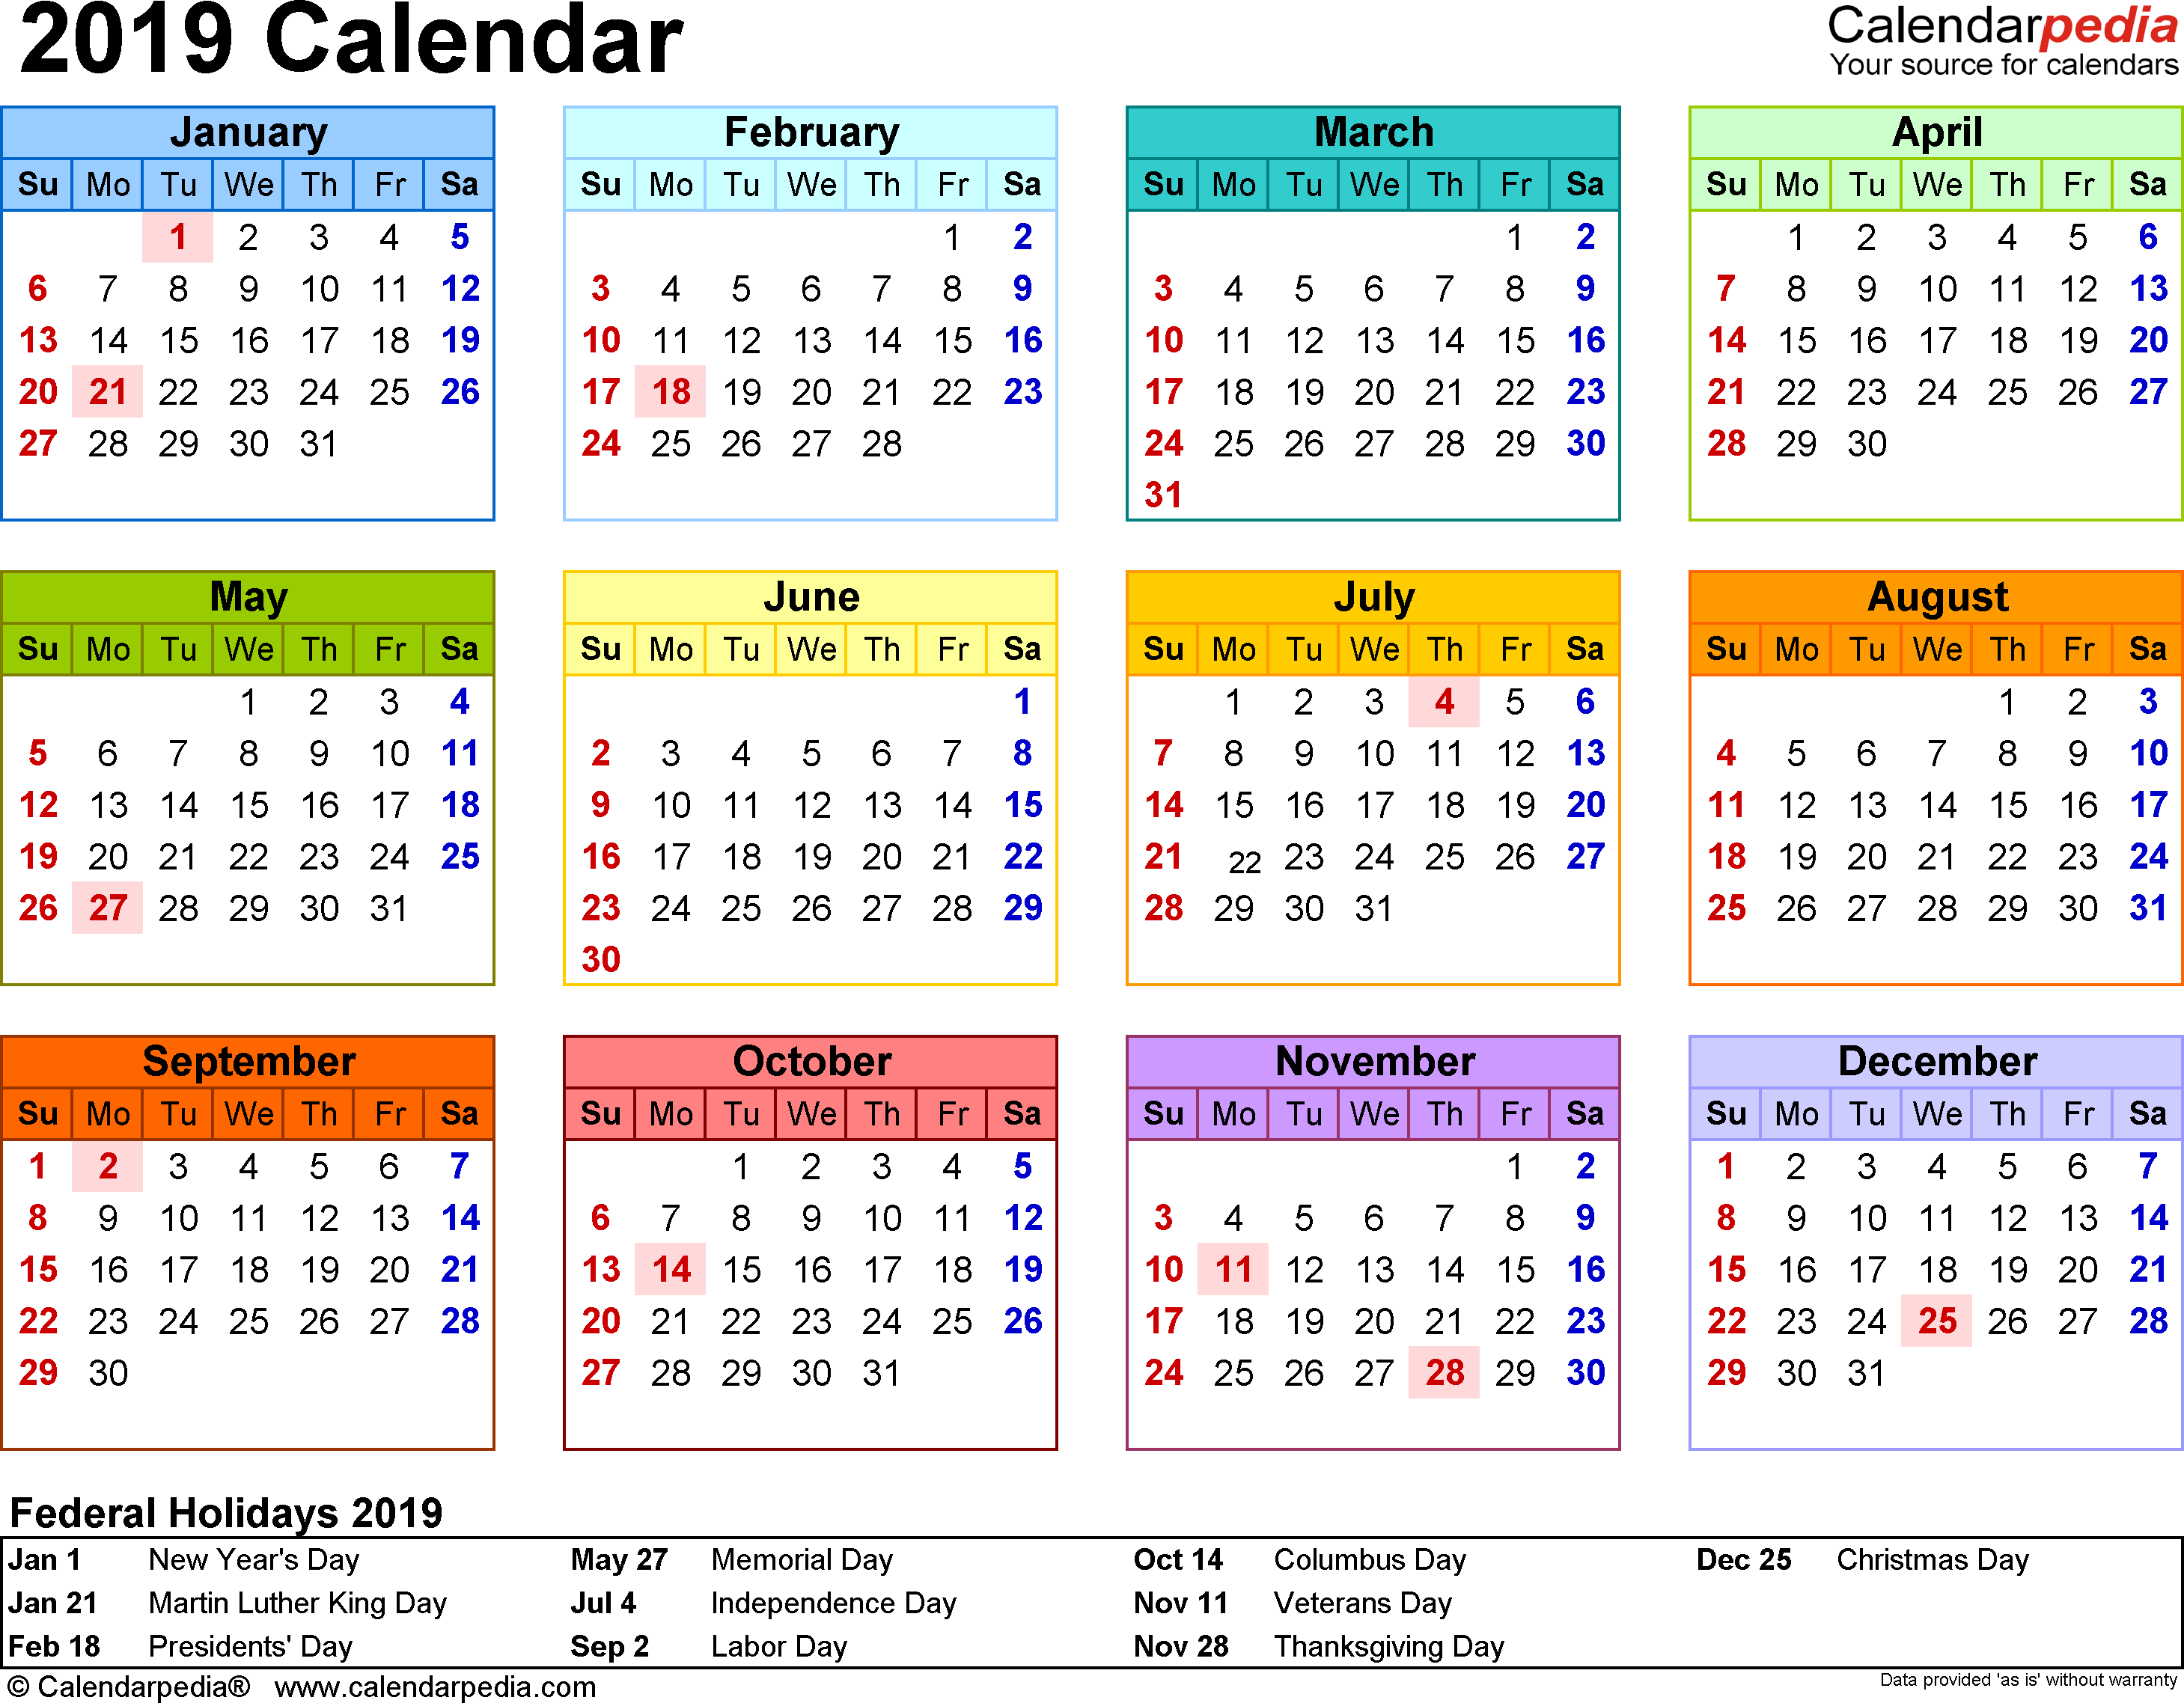 Template 8: 2019 Calendar for Word, year at a glance, 1 page, in color, landscape orientation